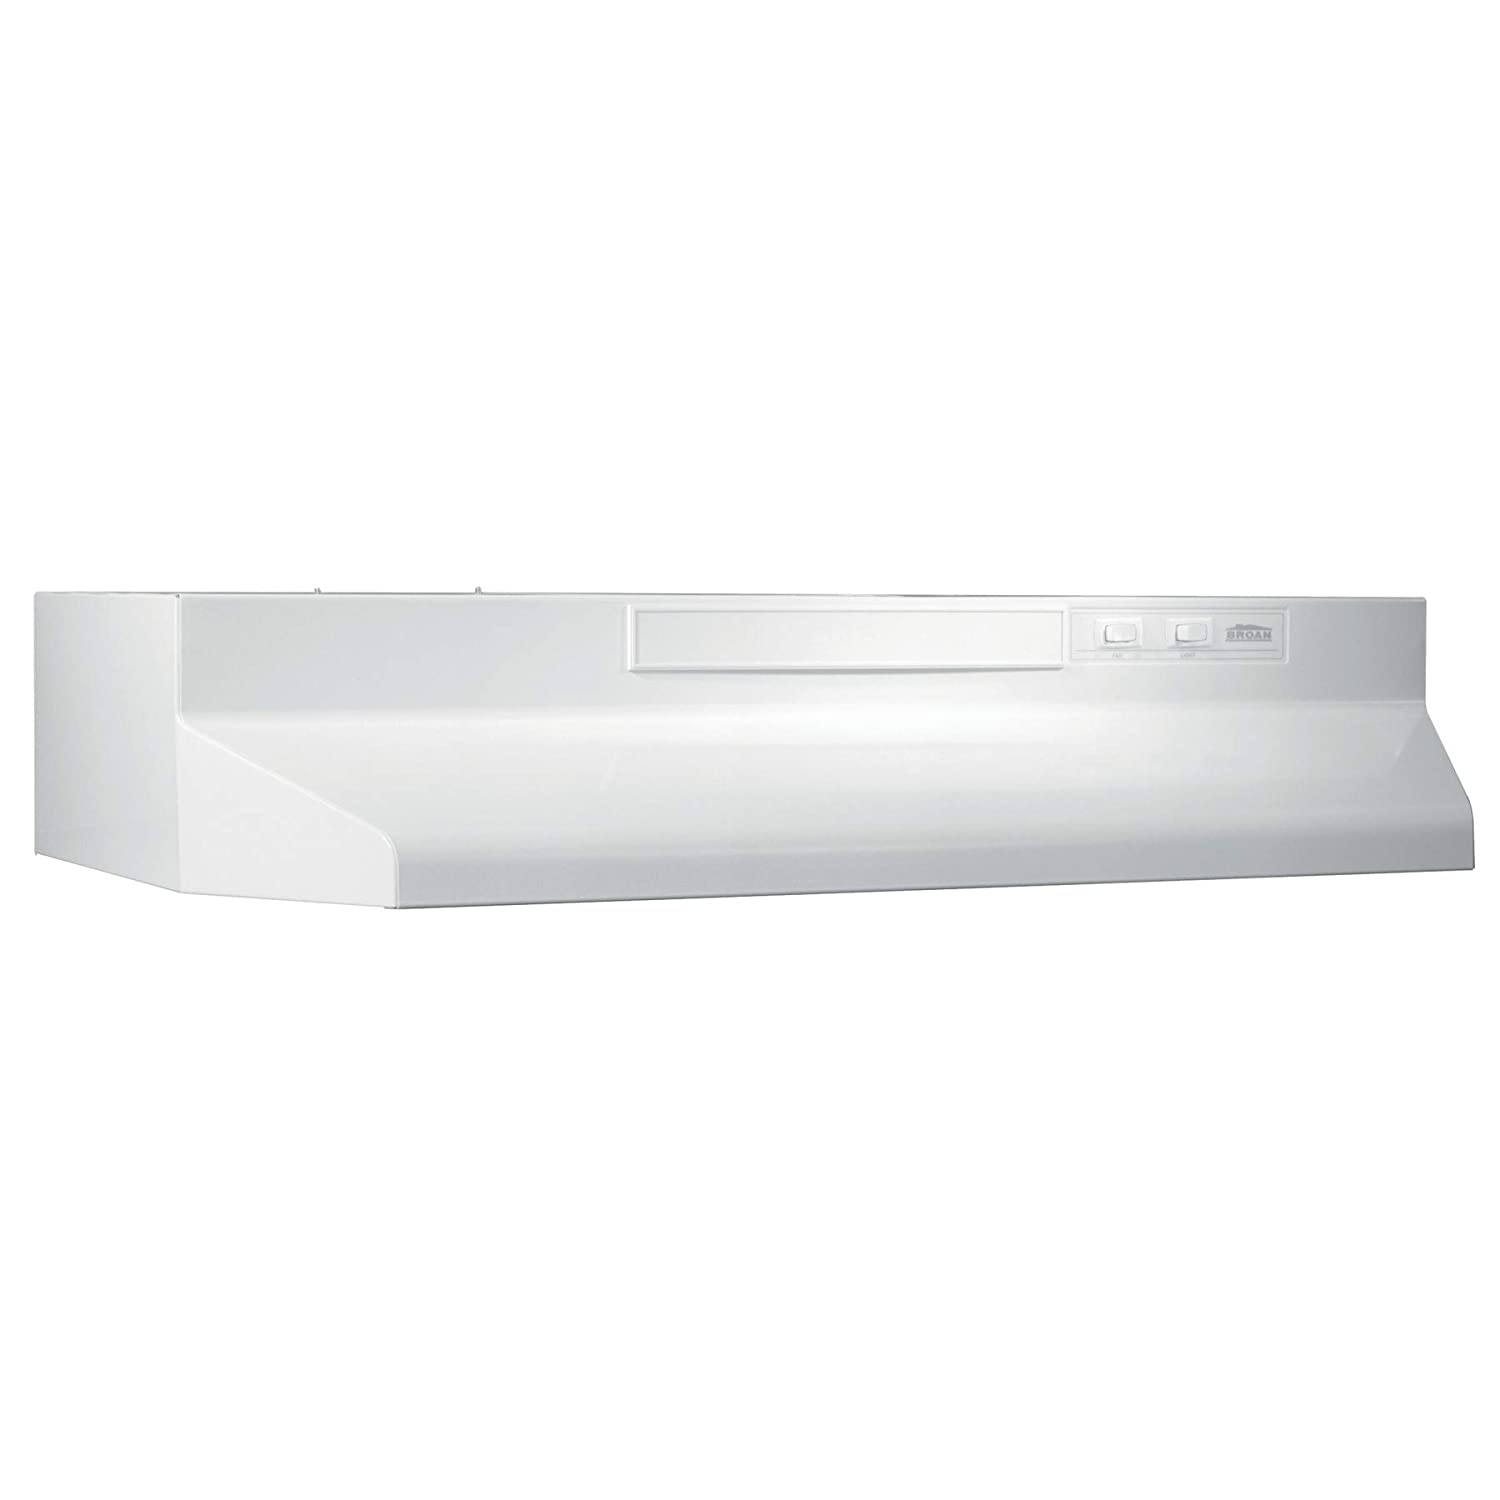 Broan-NuTone White Broan F403611 Two-Speed Four-Way Convertible Range Hood, 36-Inch